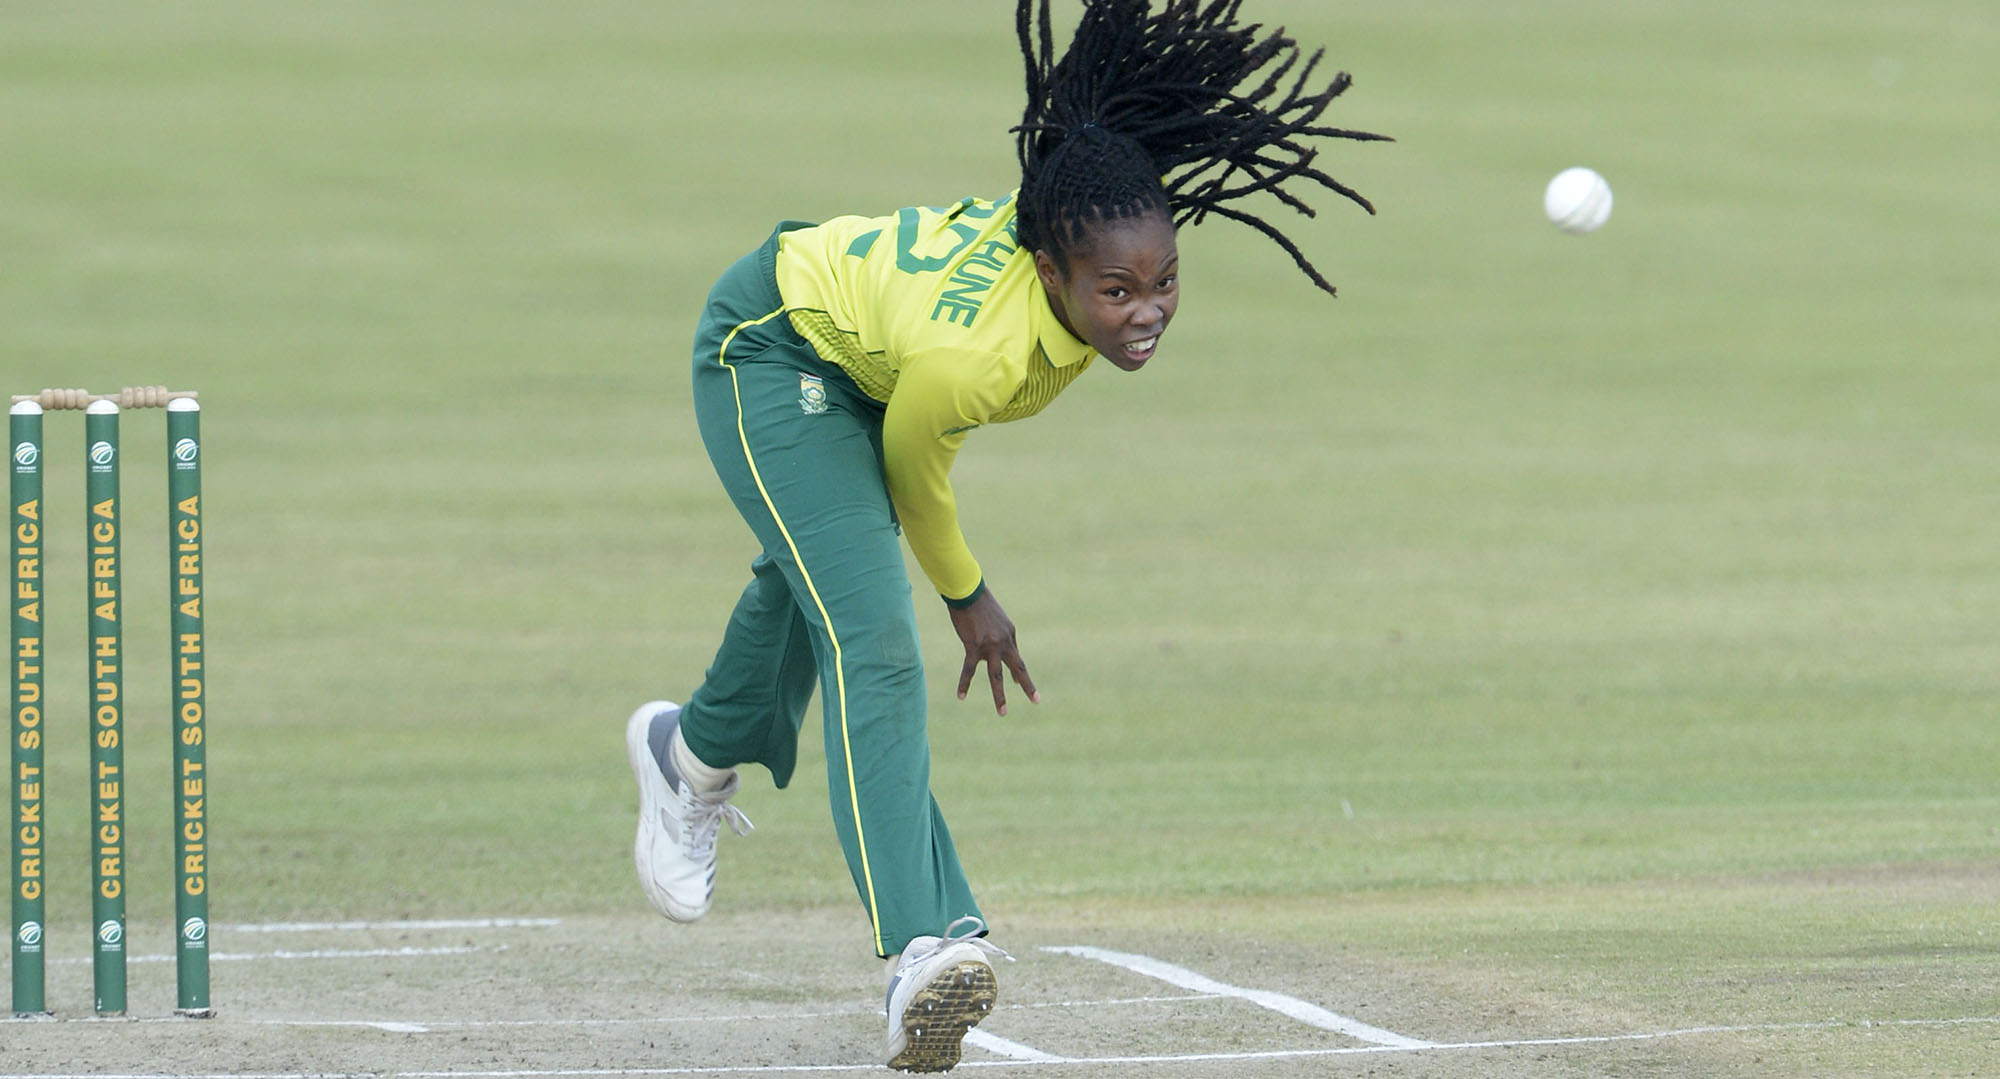 SPORT: Proteas women's cricket team building momentum ahead of T20 World Cup